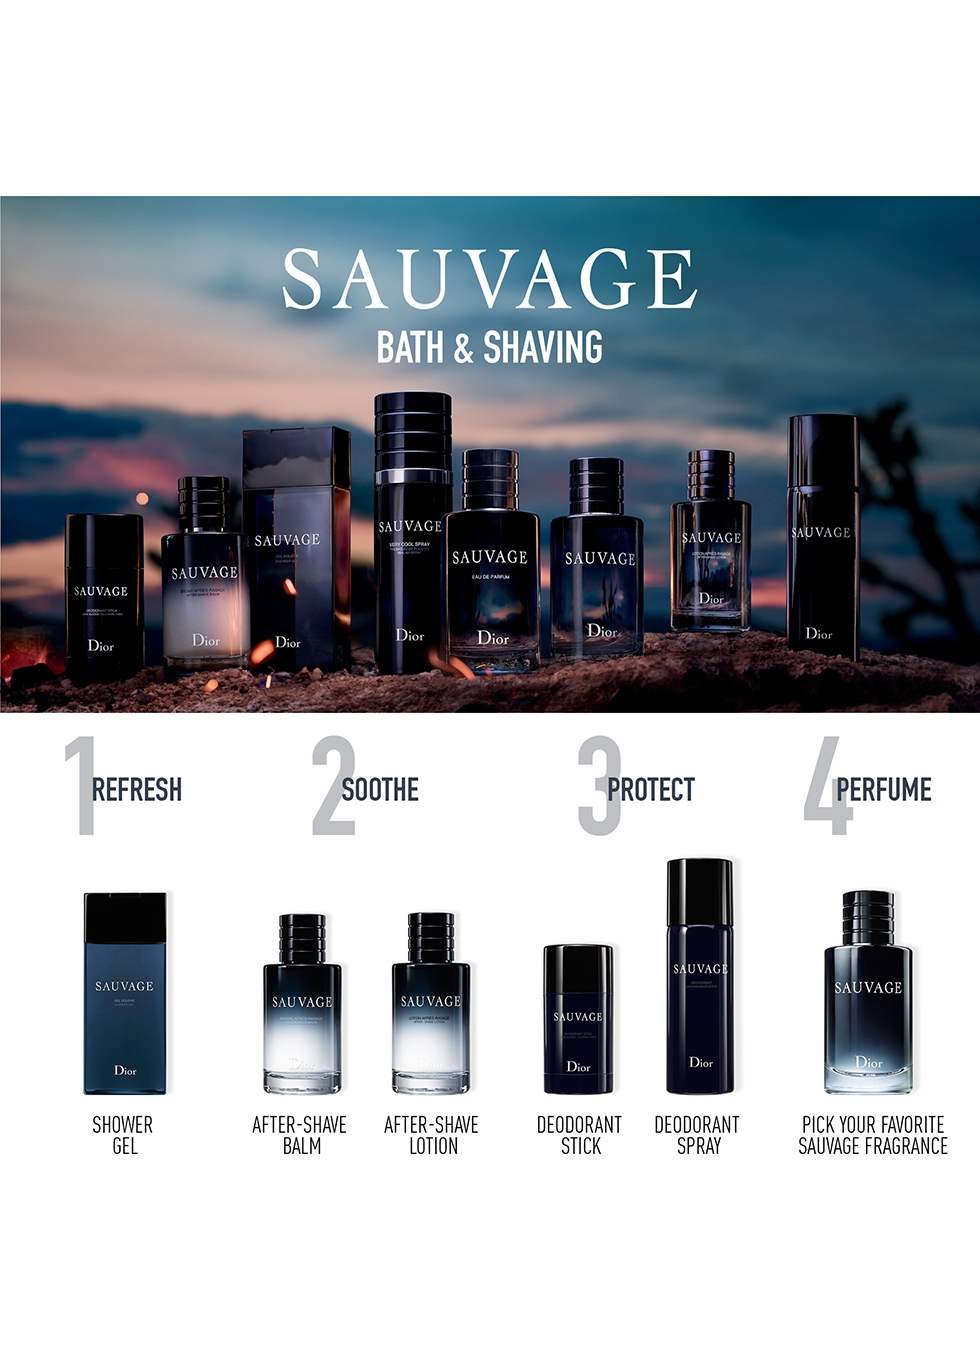 Sauvage After-Shave Balm 100ml - Dior